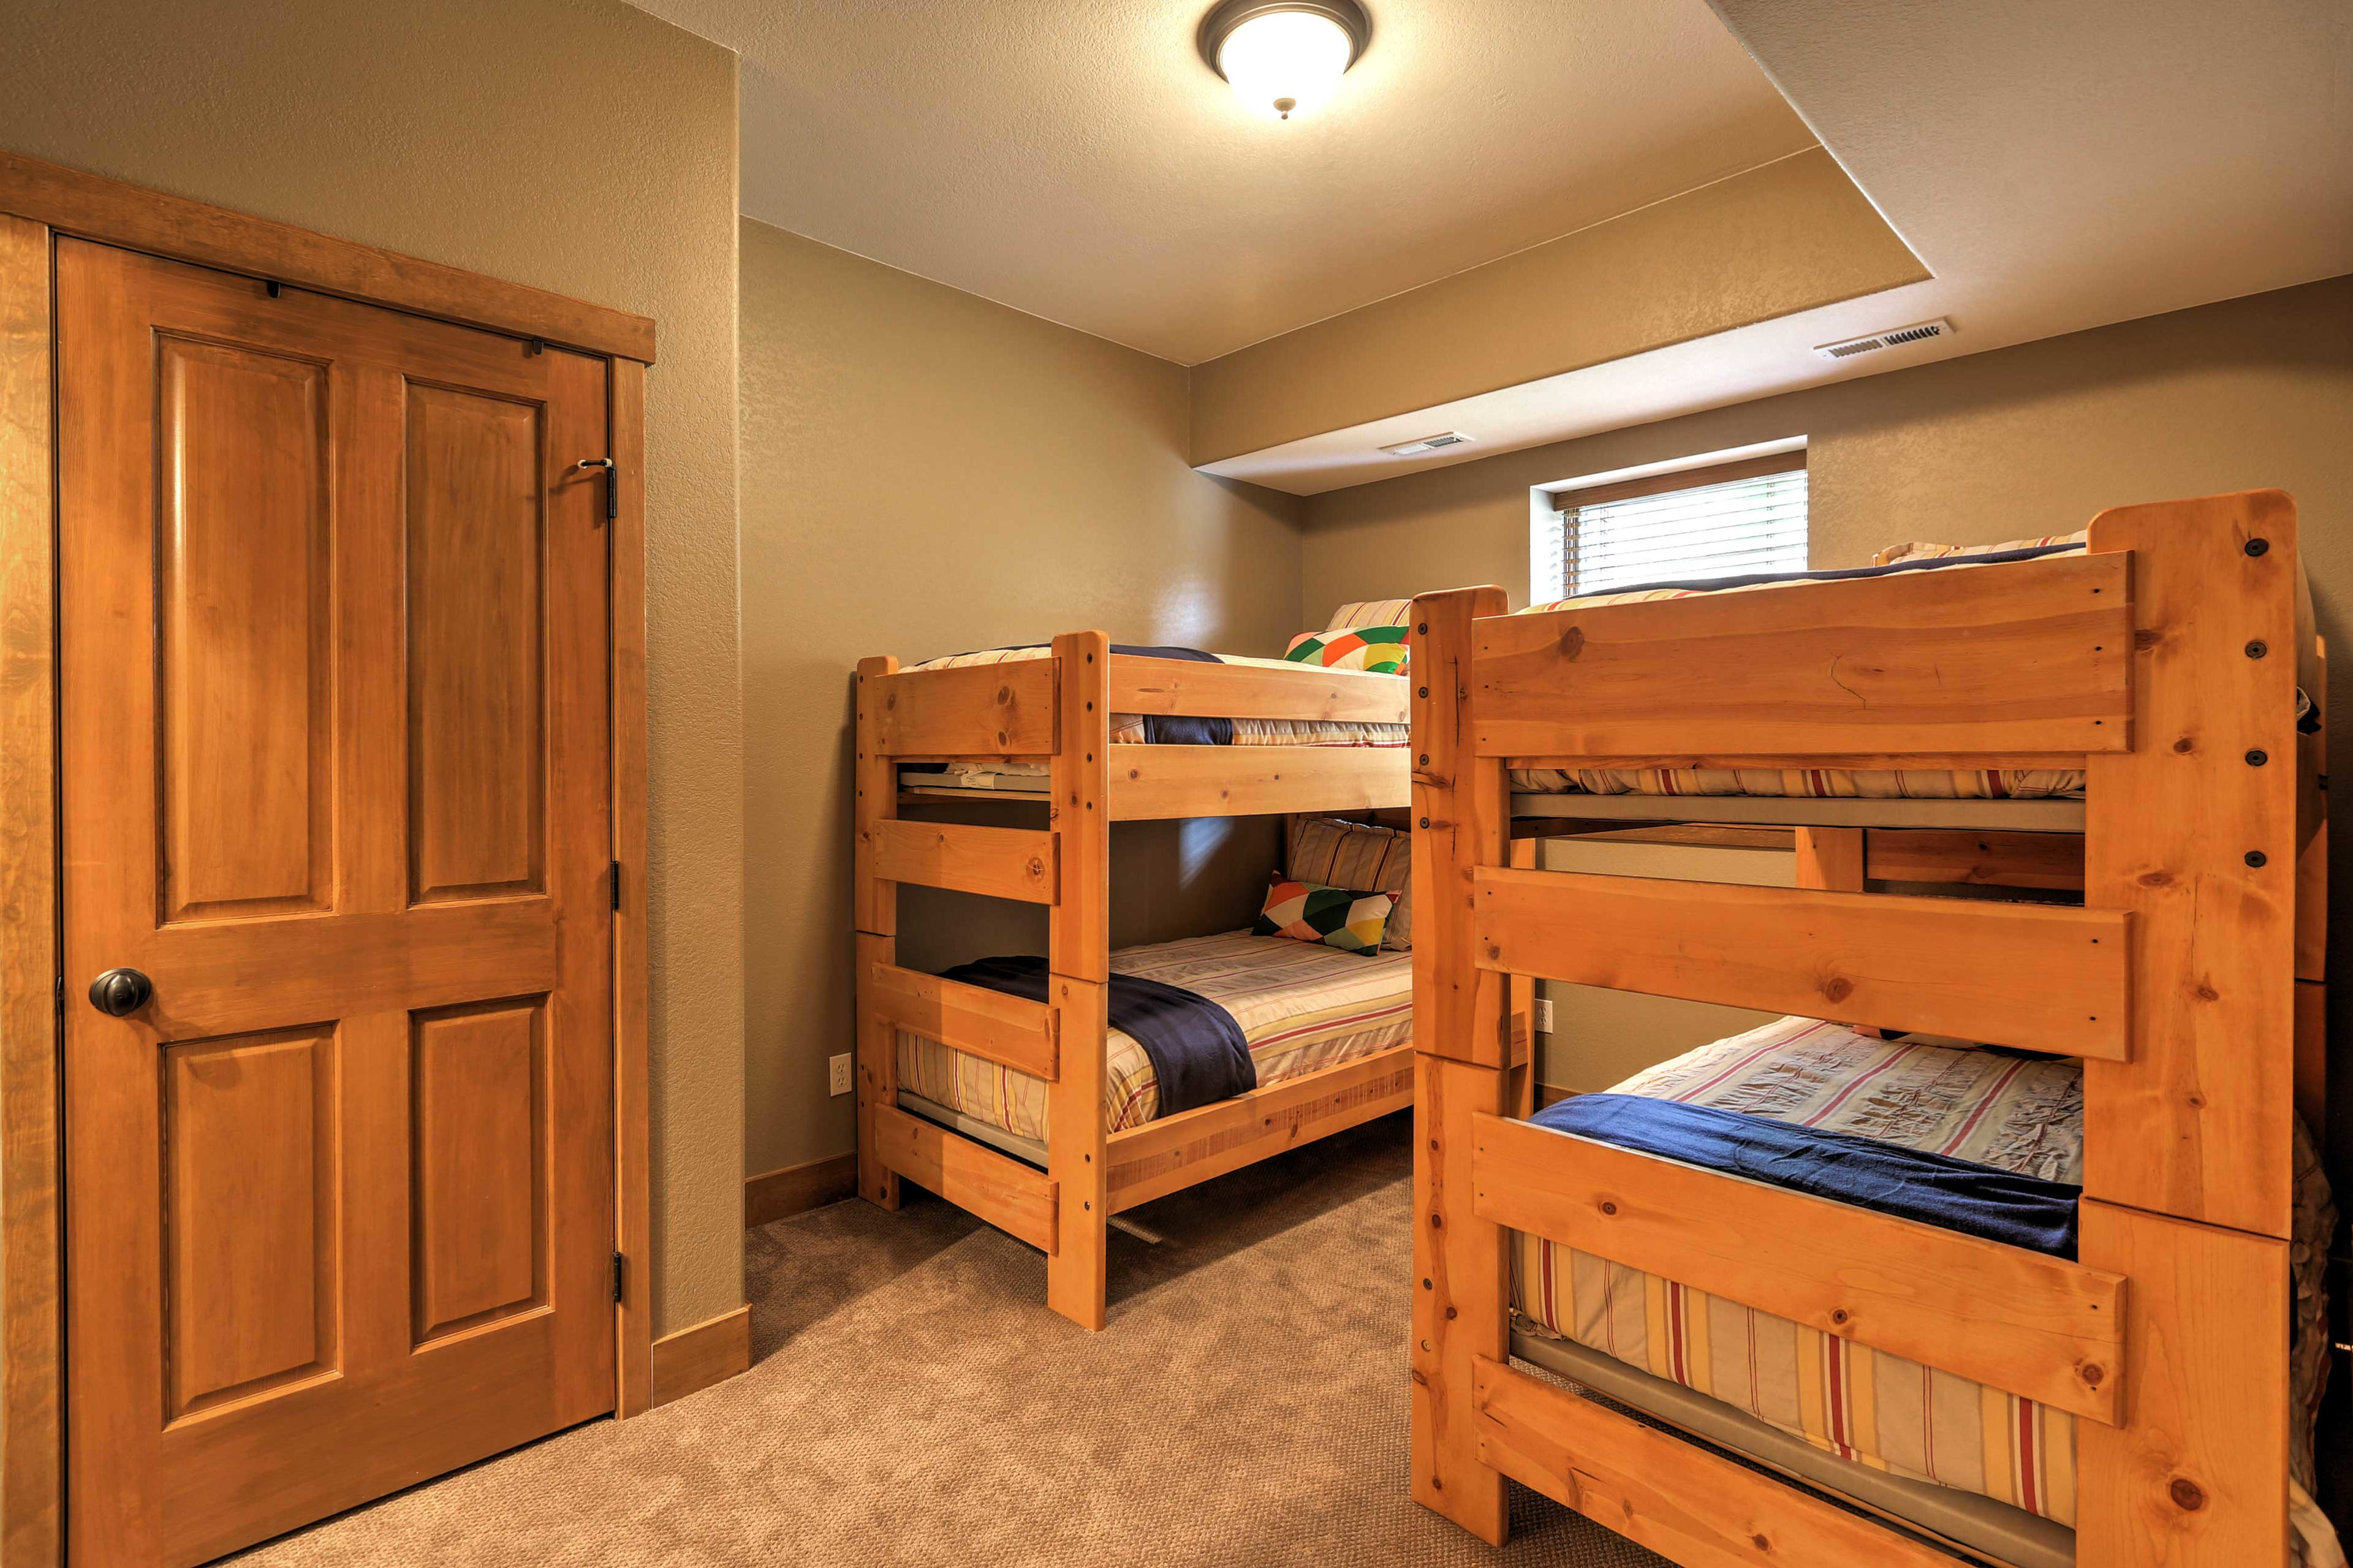 Kids will love sleeping in these twin-over-twin bunk beds.